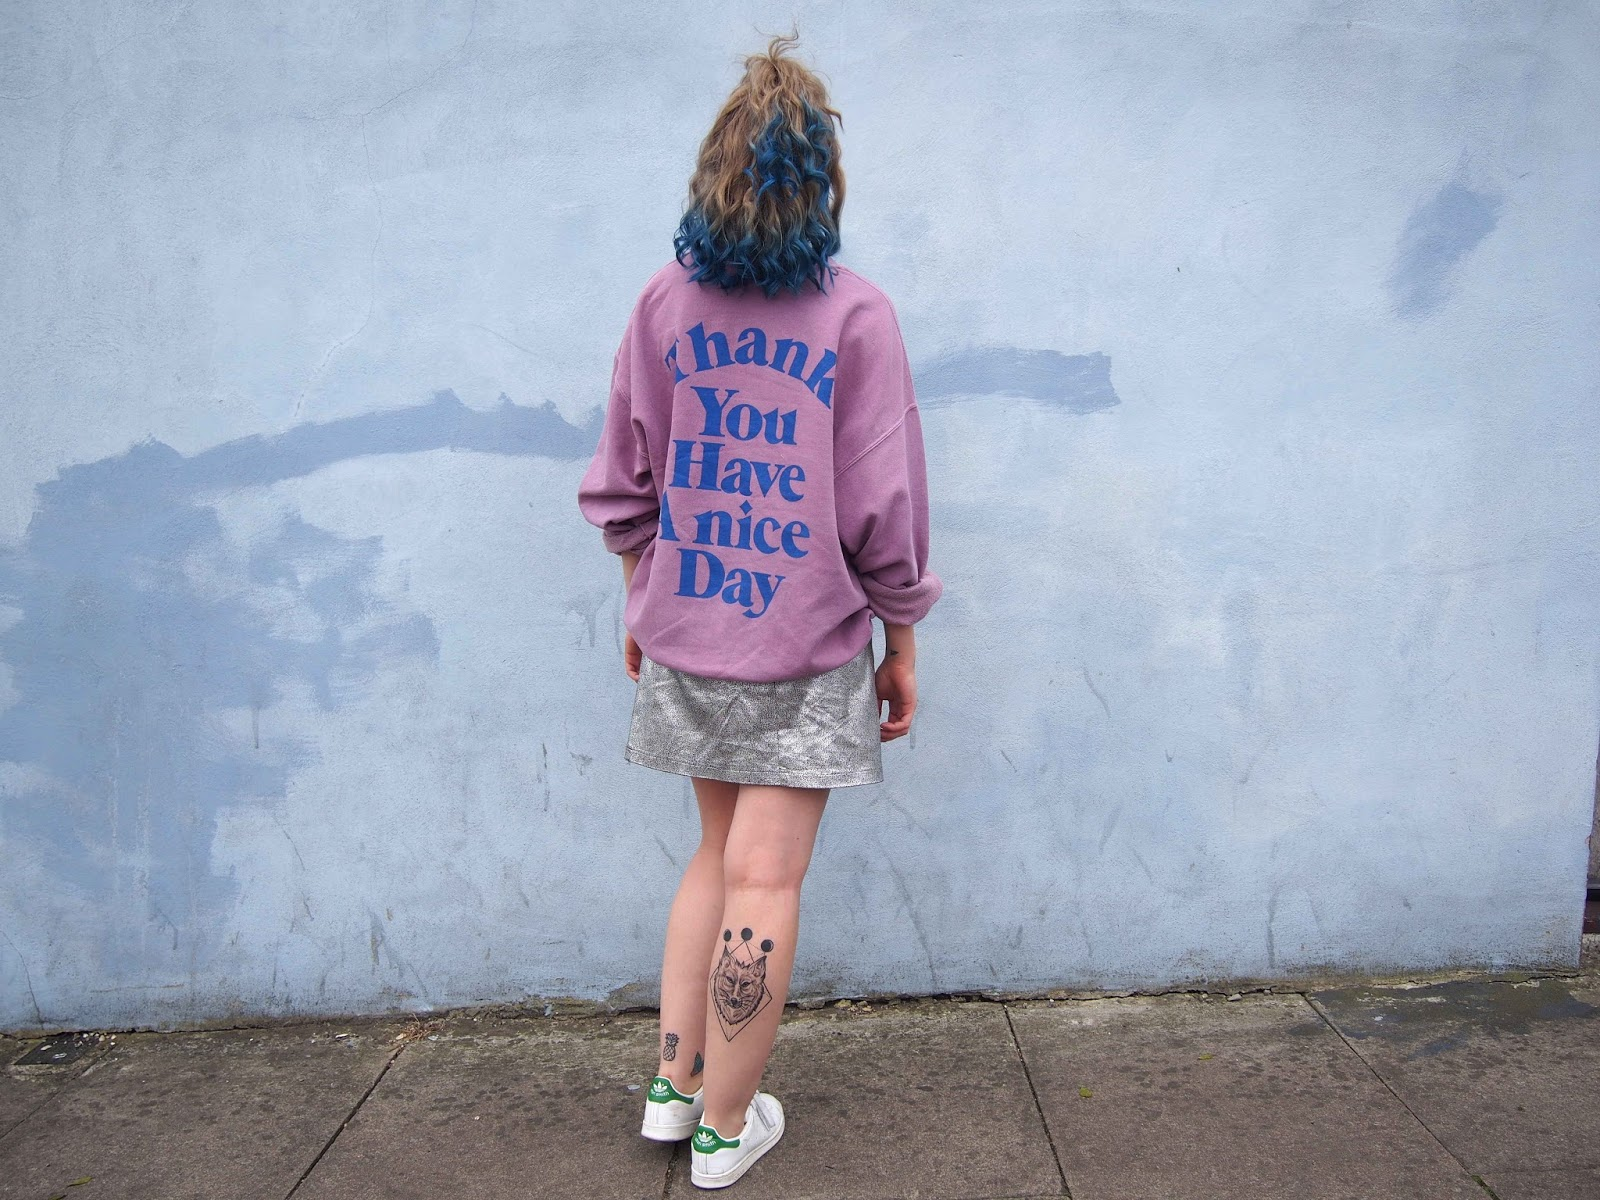 spring outfit, spring outfit ideas, fashion trend 2017, 2017 ss fashion trend, gunge outfit ideas, metallic skirt, oversized jumper, stan smith trainers